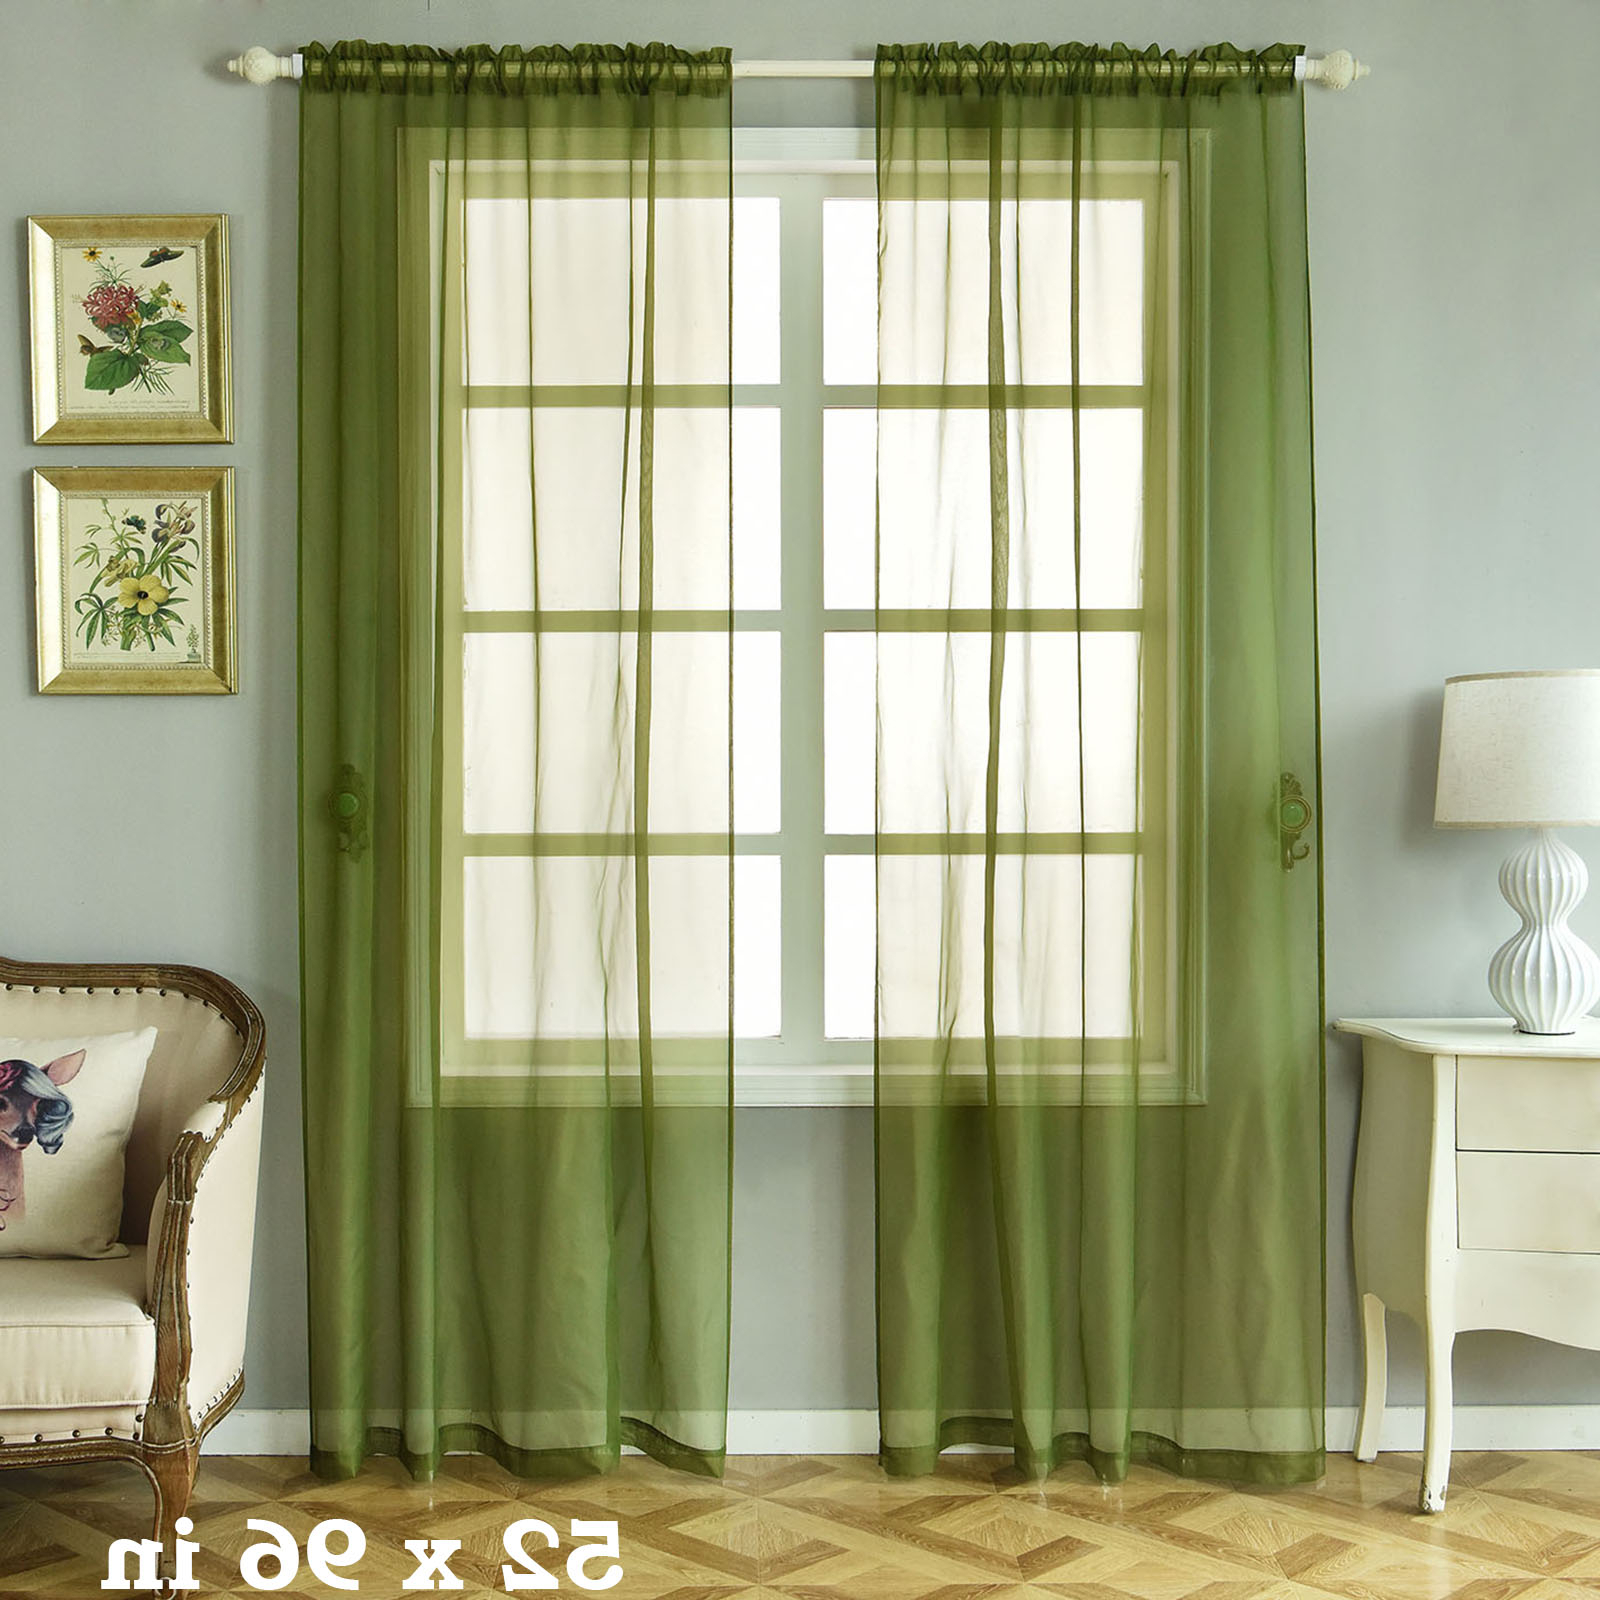 """Fashionable Willow Rod Pocket Window Curtain Panels Pertaining To Details About 2 Pcs Willow Green 52"""" X 96"""" Sheer Organza Window Curtains Drapes Panels Home (View 20 of 20)"""